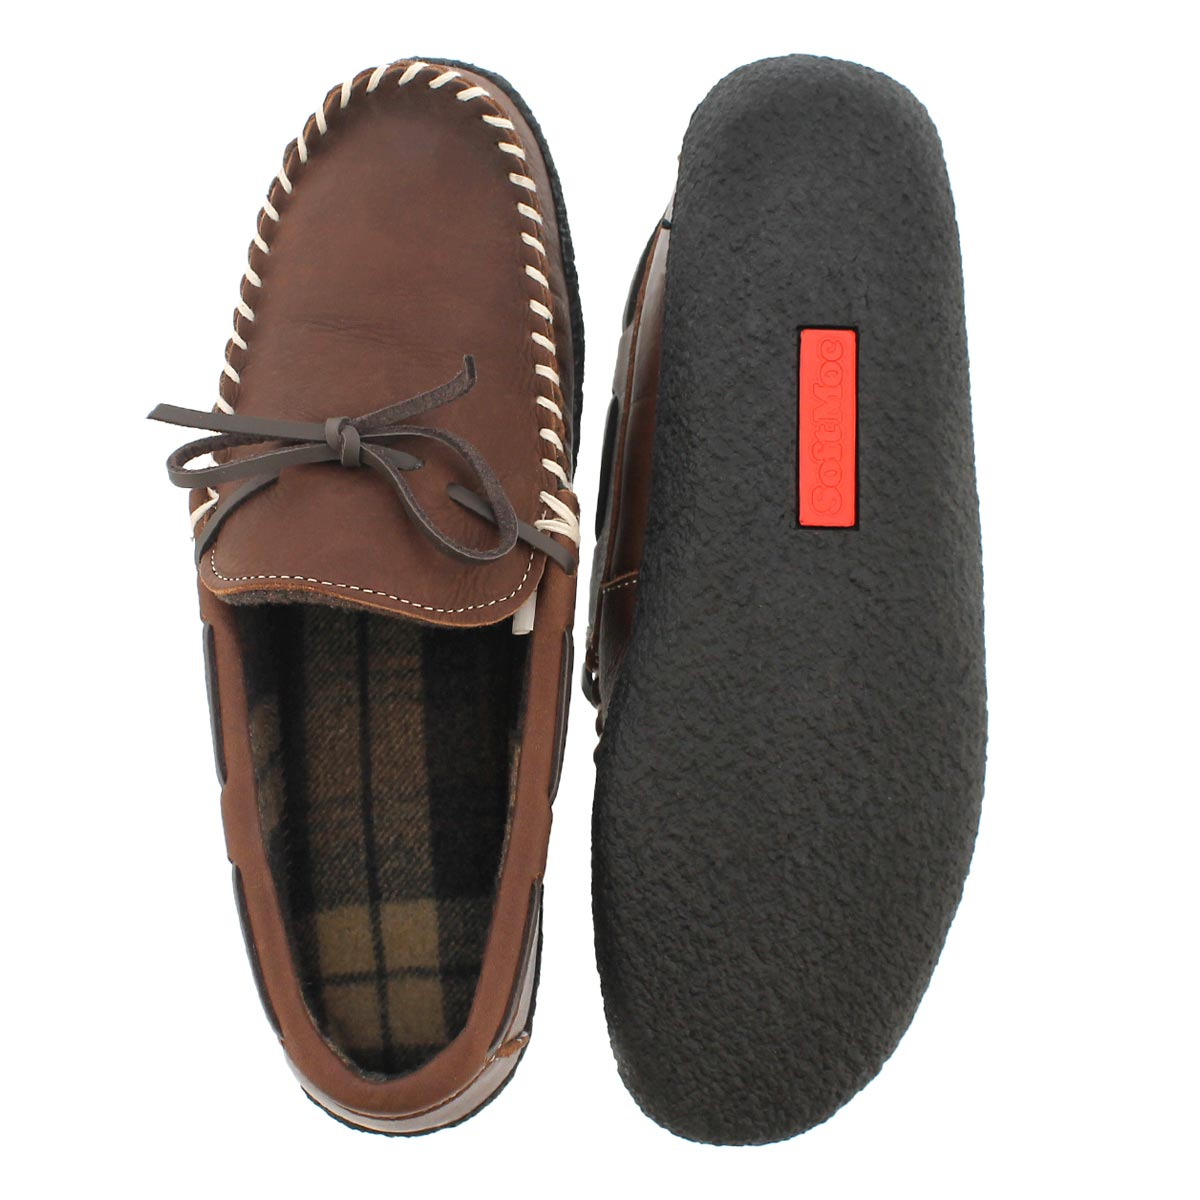 Mns Clovis brown lined moccasin